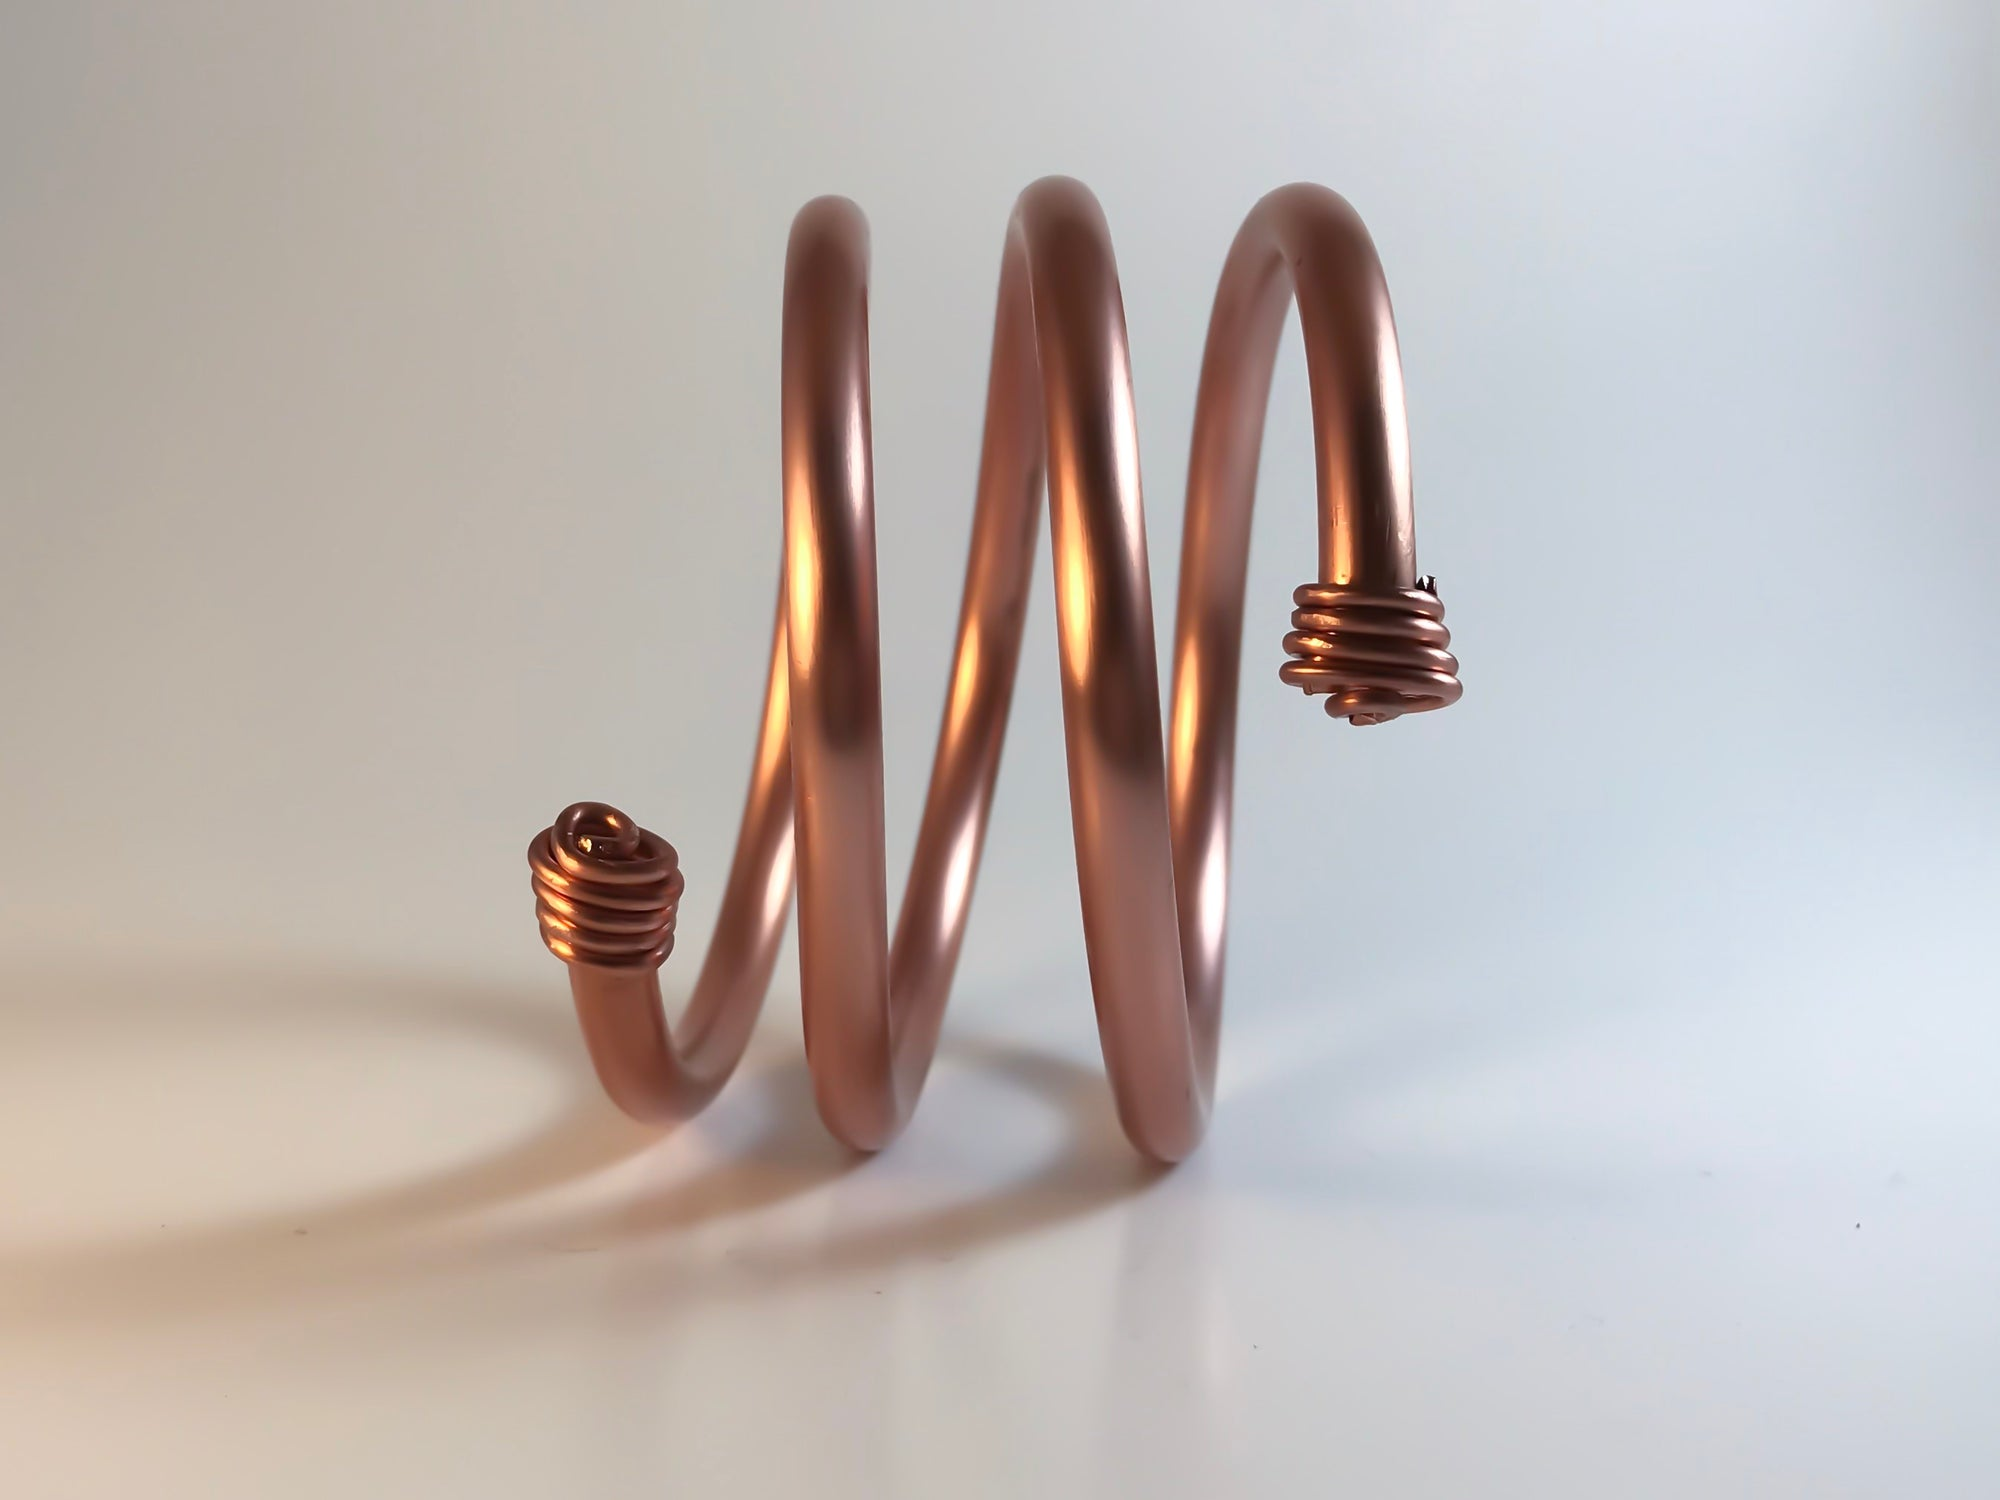 333 SPIRAL POWERCUFFS | ENERGY CONDUCTOR | SUPER COILS